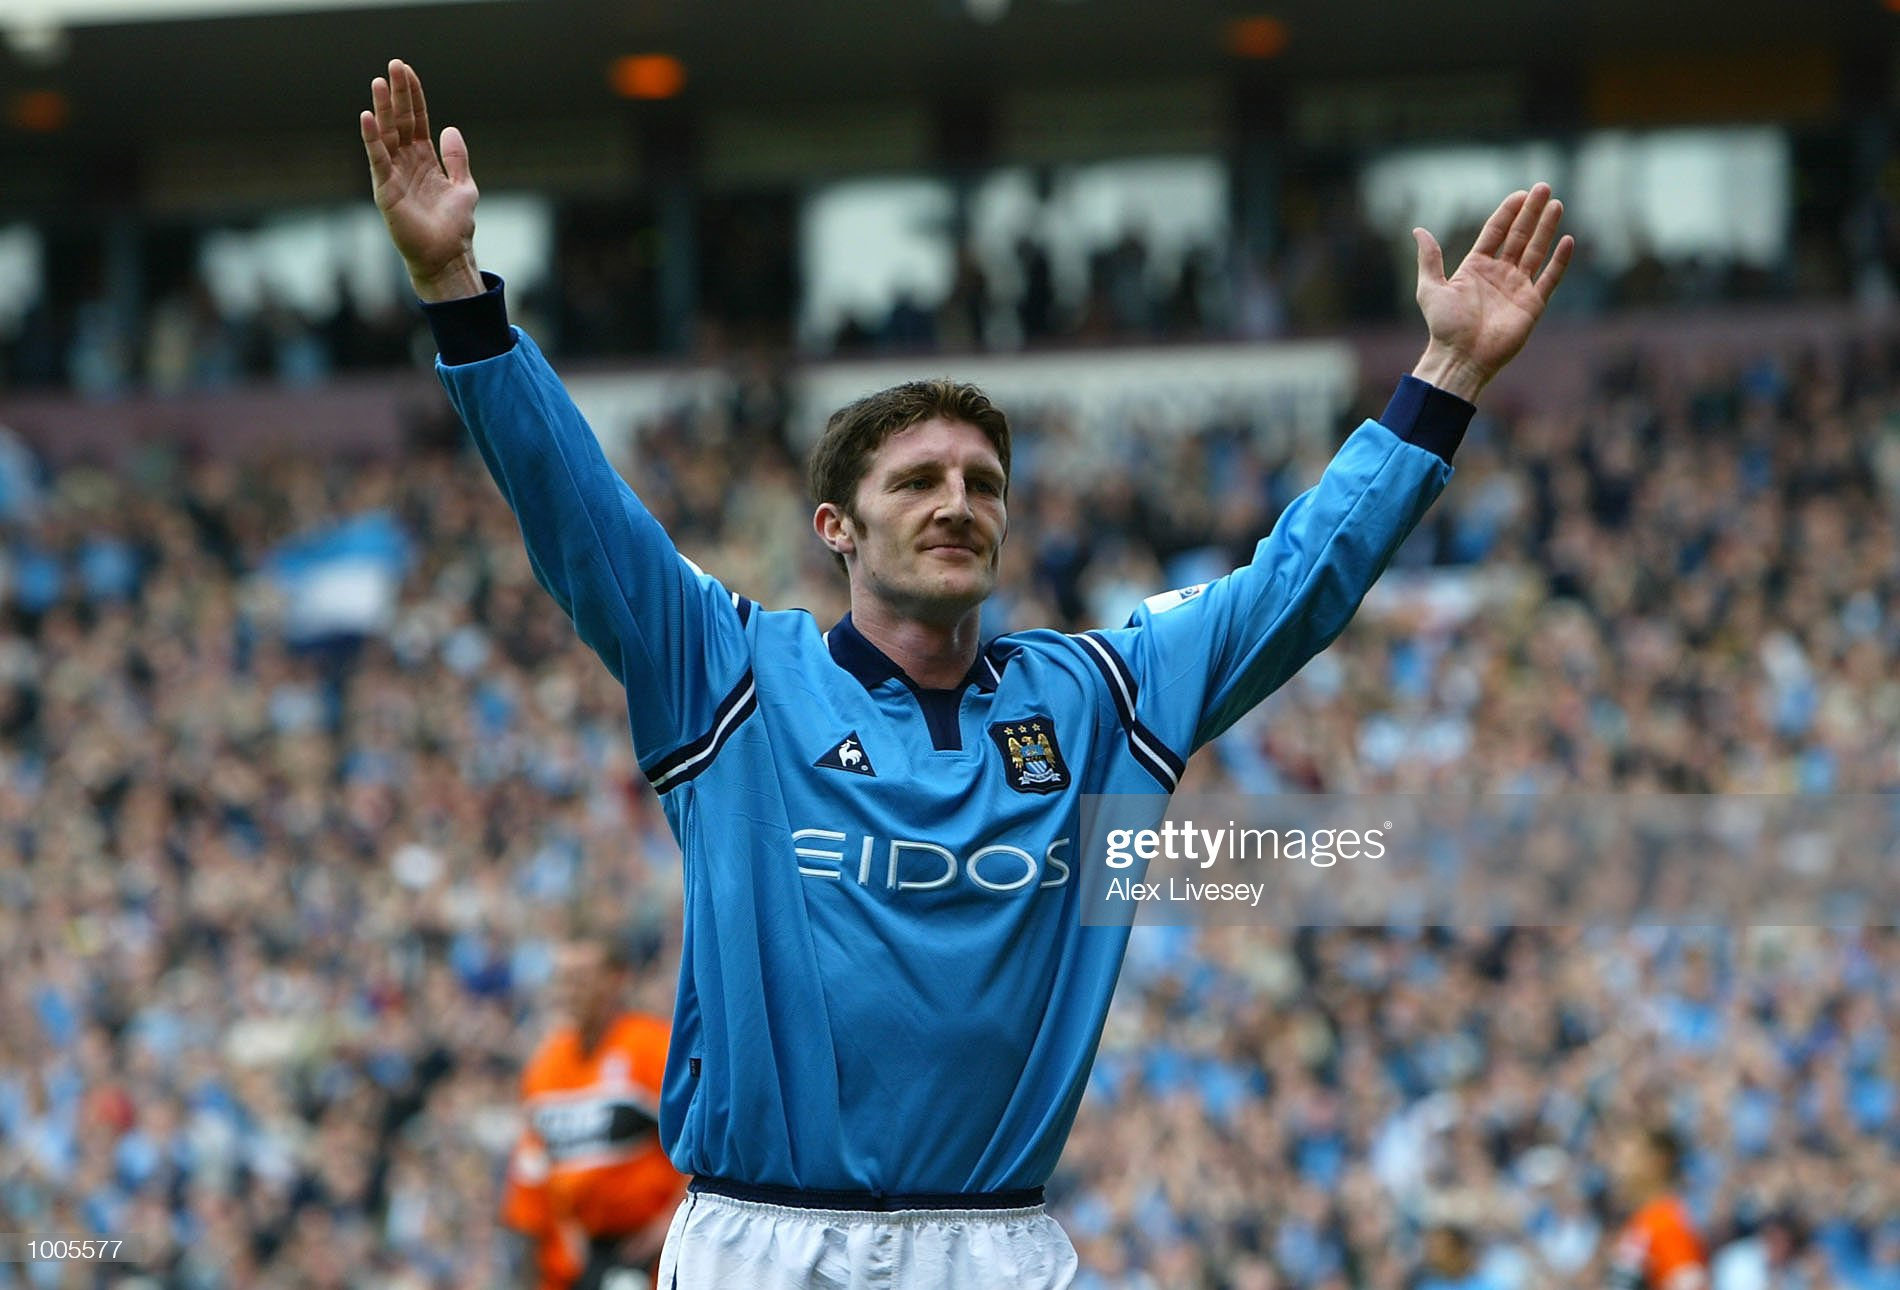 https://media.gettyimages.com/photos/apr-2002-jon-macken-of-man-city-celebrates-his-goal-during-the-first-picture-id1005577?s=2048x2048